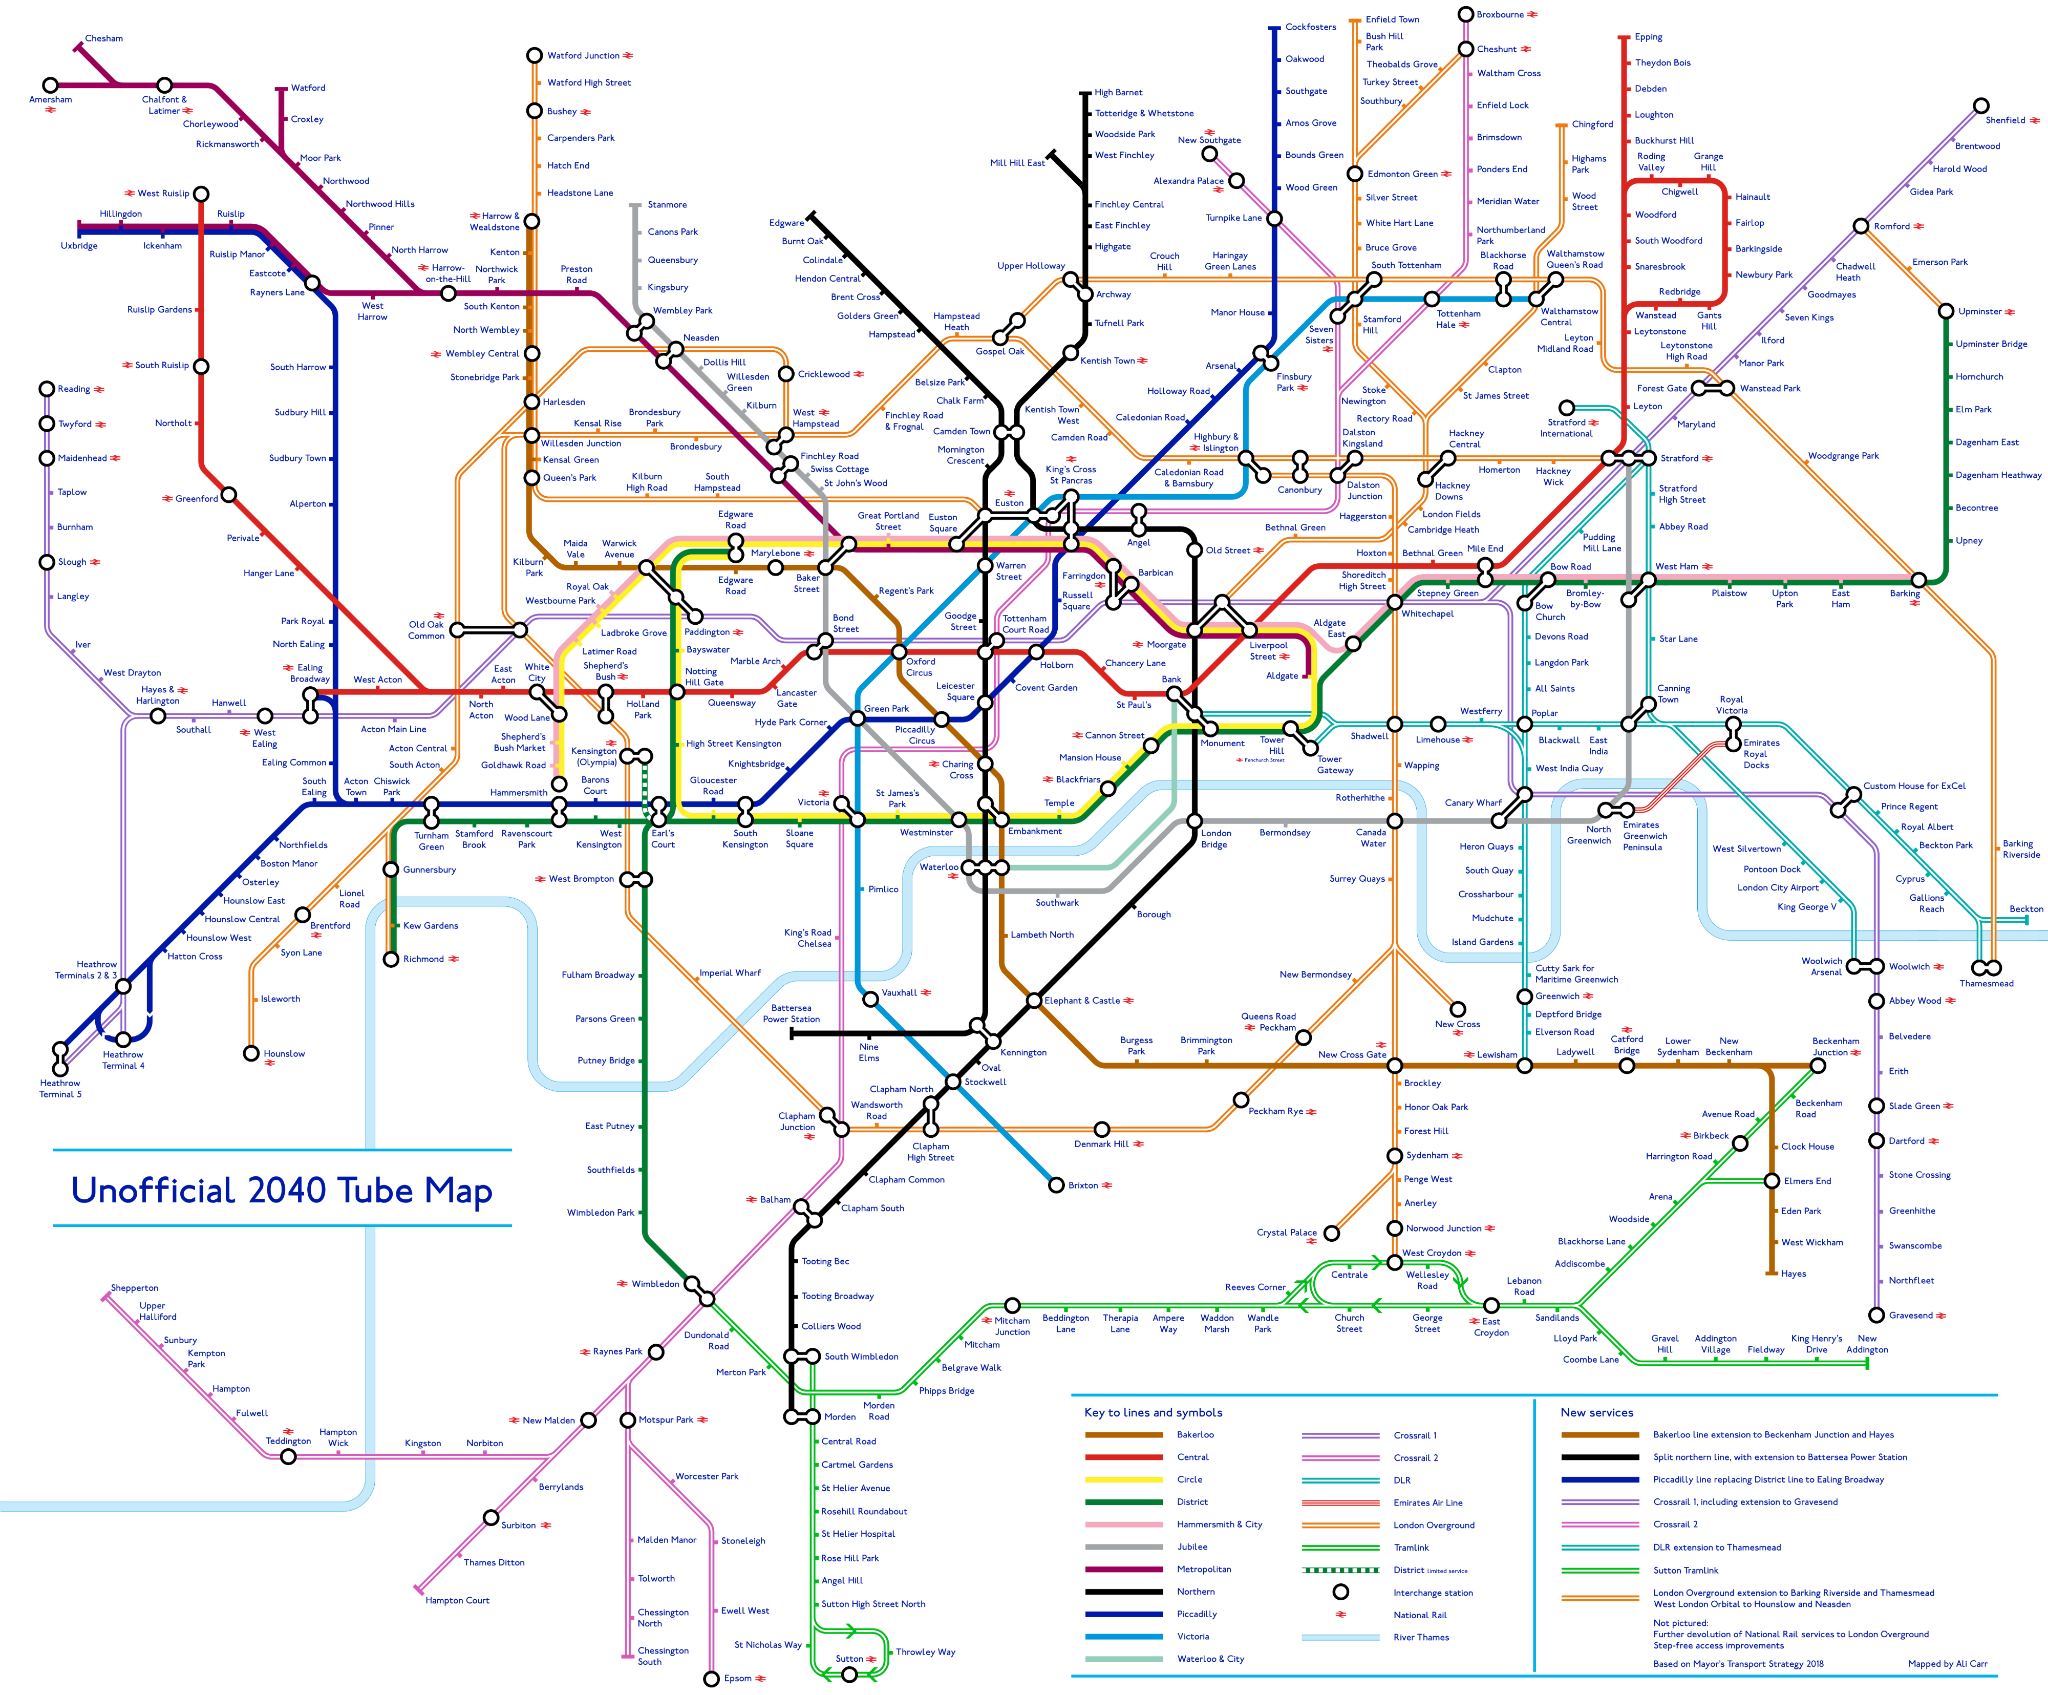 Here\'s what the London tube map could look like in 2040